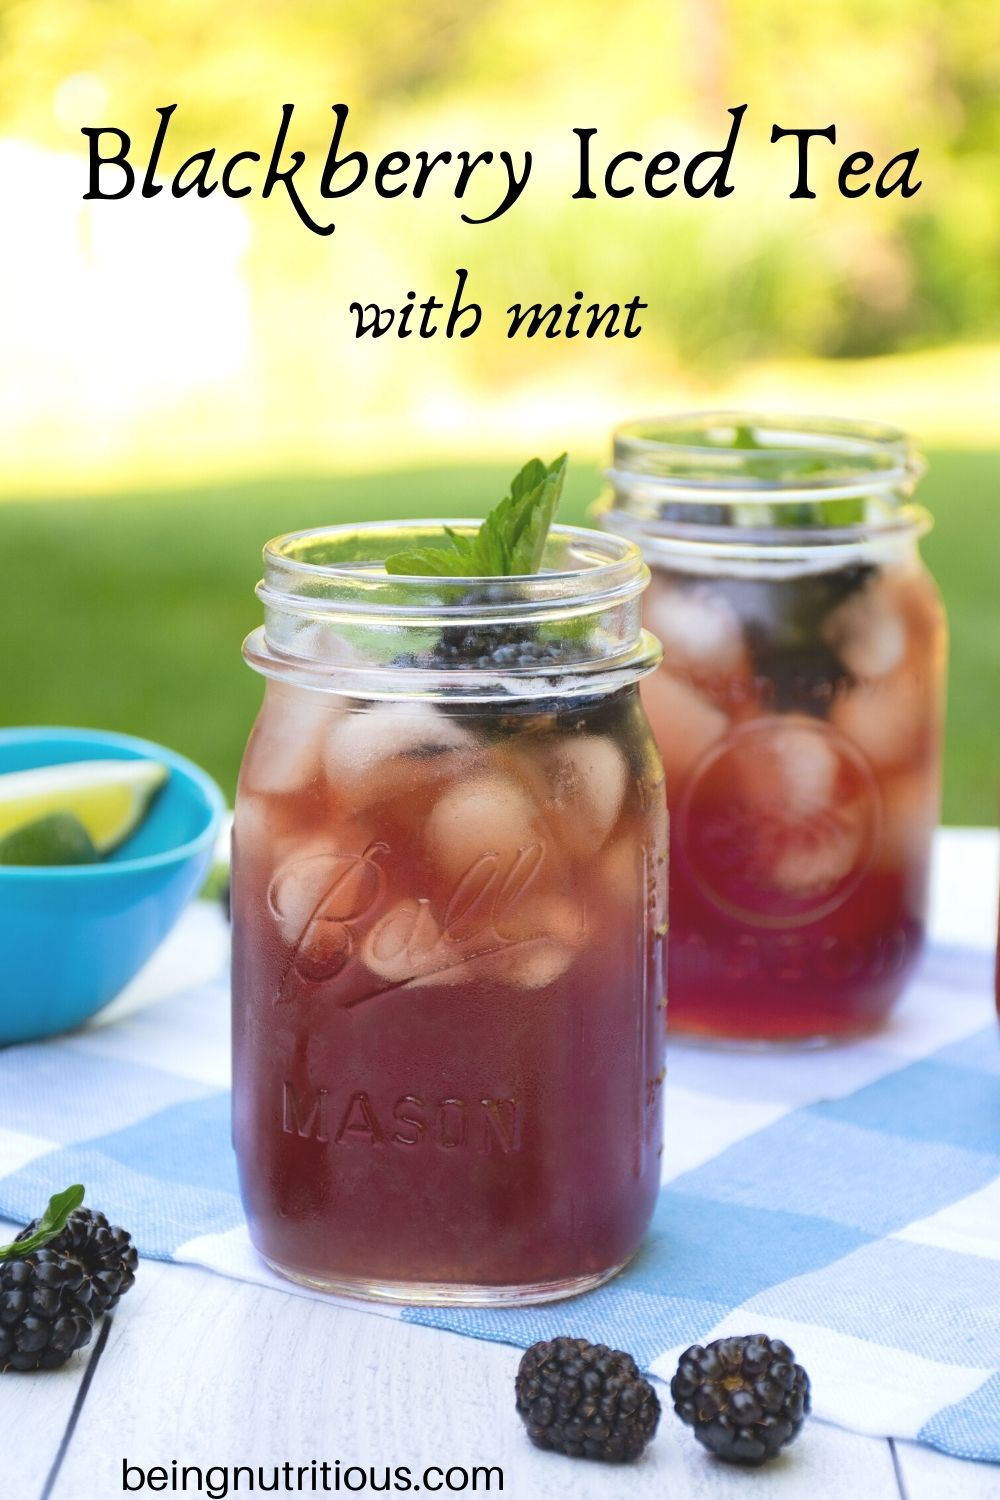 Iced tea in Mason jars, with ice, blackberries, and mint. Text overlay: Blackberry Iced Tea with mint.